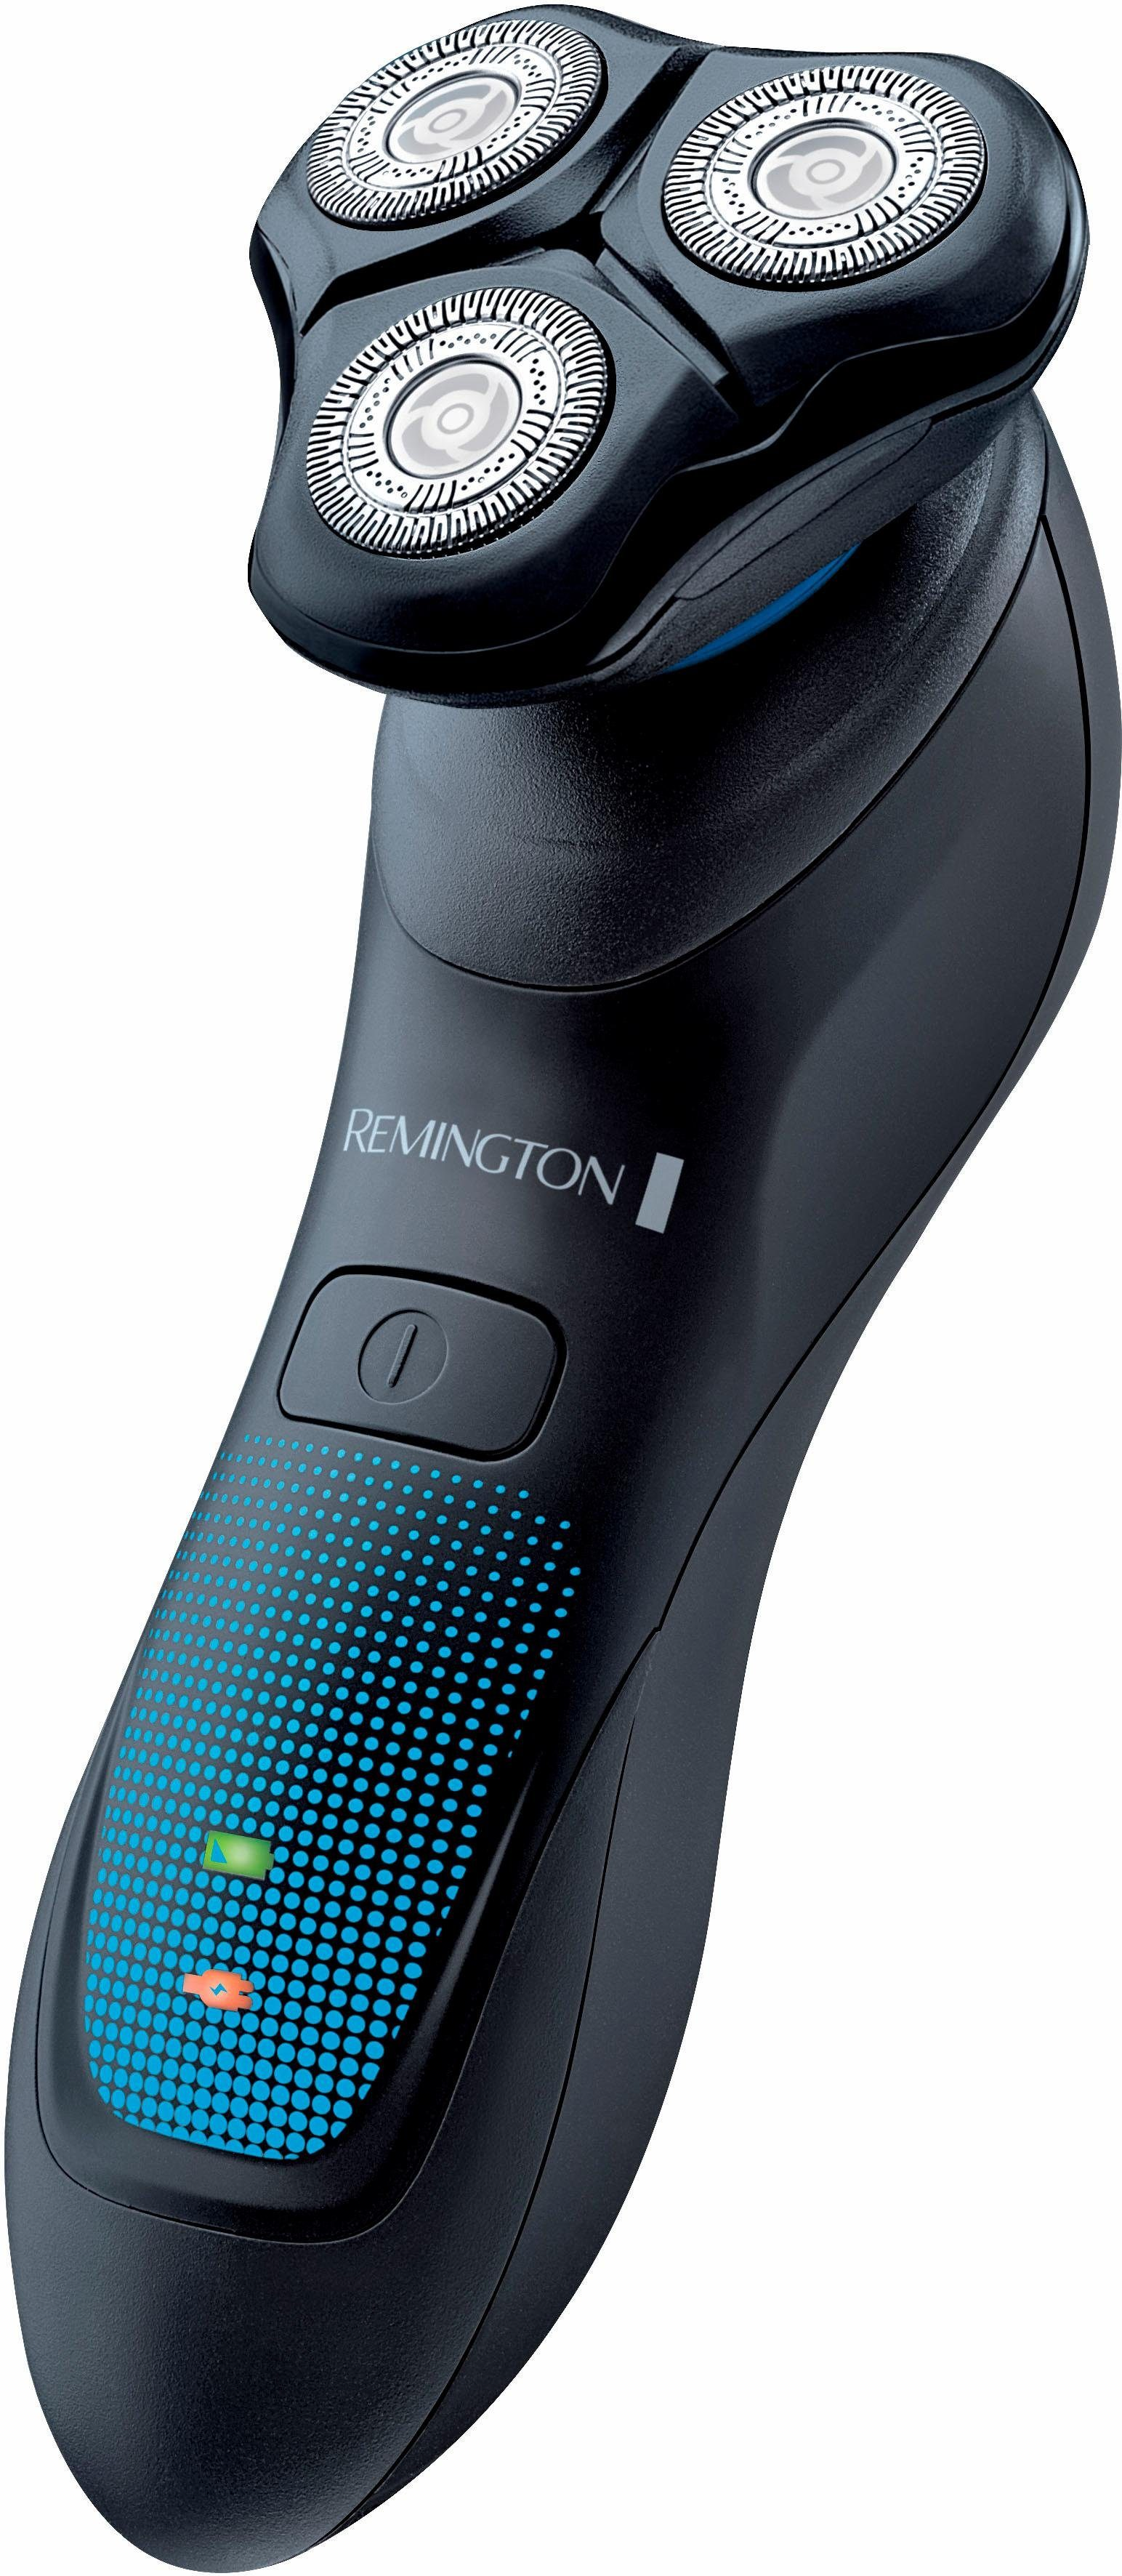 Remington Herrenrasierer HyperFlex Aqua XR1430, HyperFlex-Technologie